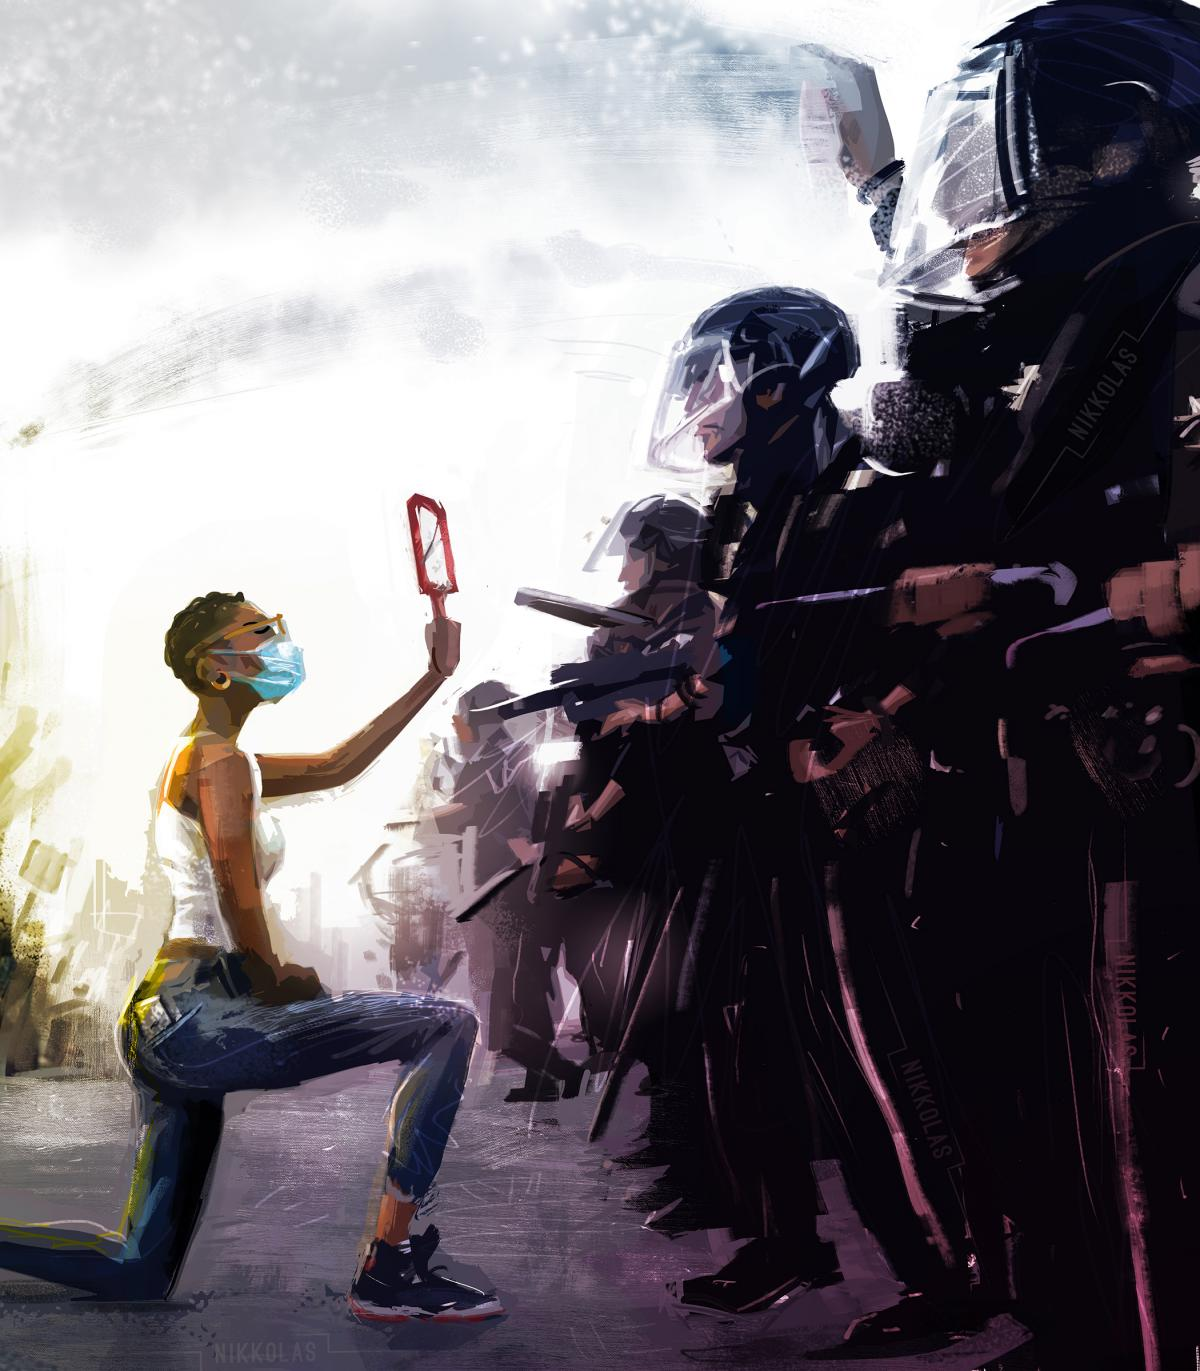 Artist Nikkolas Smith found inspiration for this painting in Dai Sugano's photograph of a protester kneeling before police. Smith posts his digital paintings — many with social justice themes — to social media in the hope that his art will inspire cha